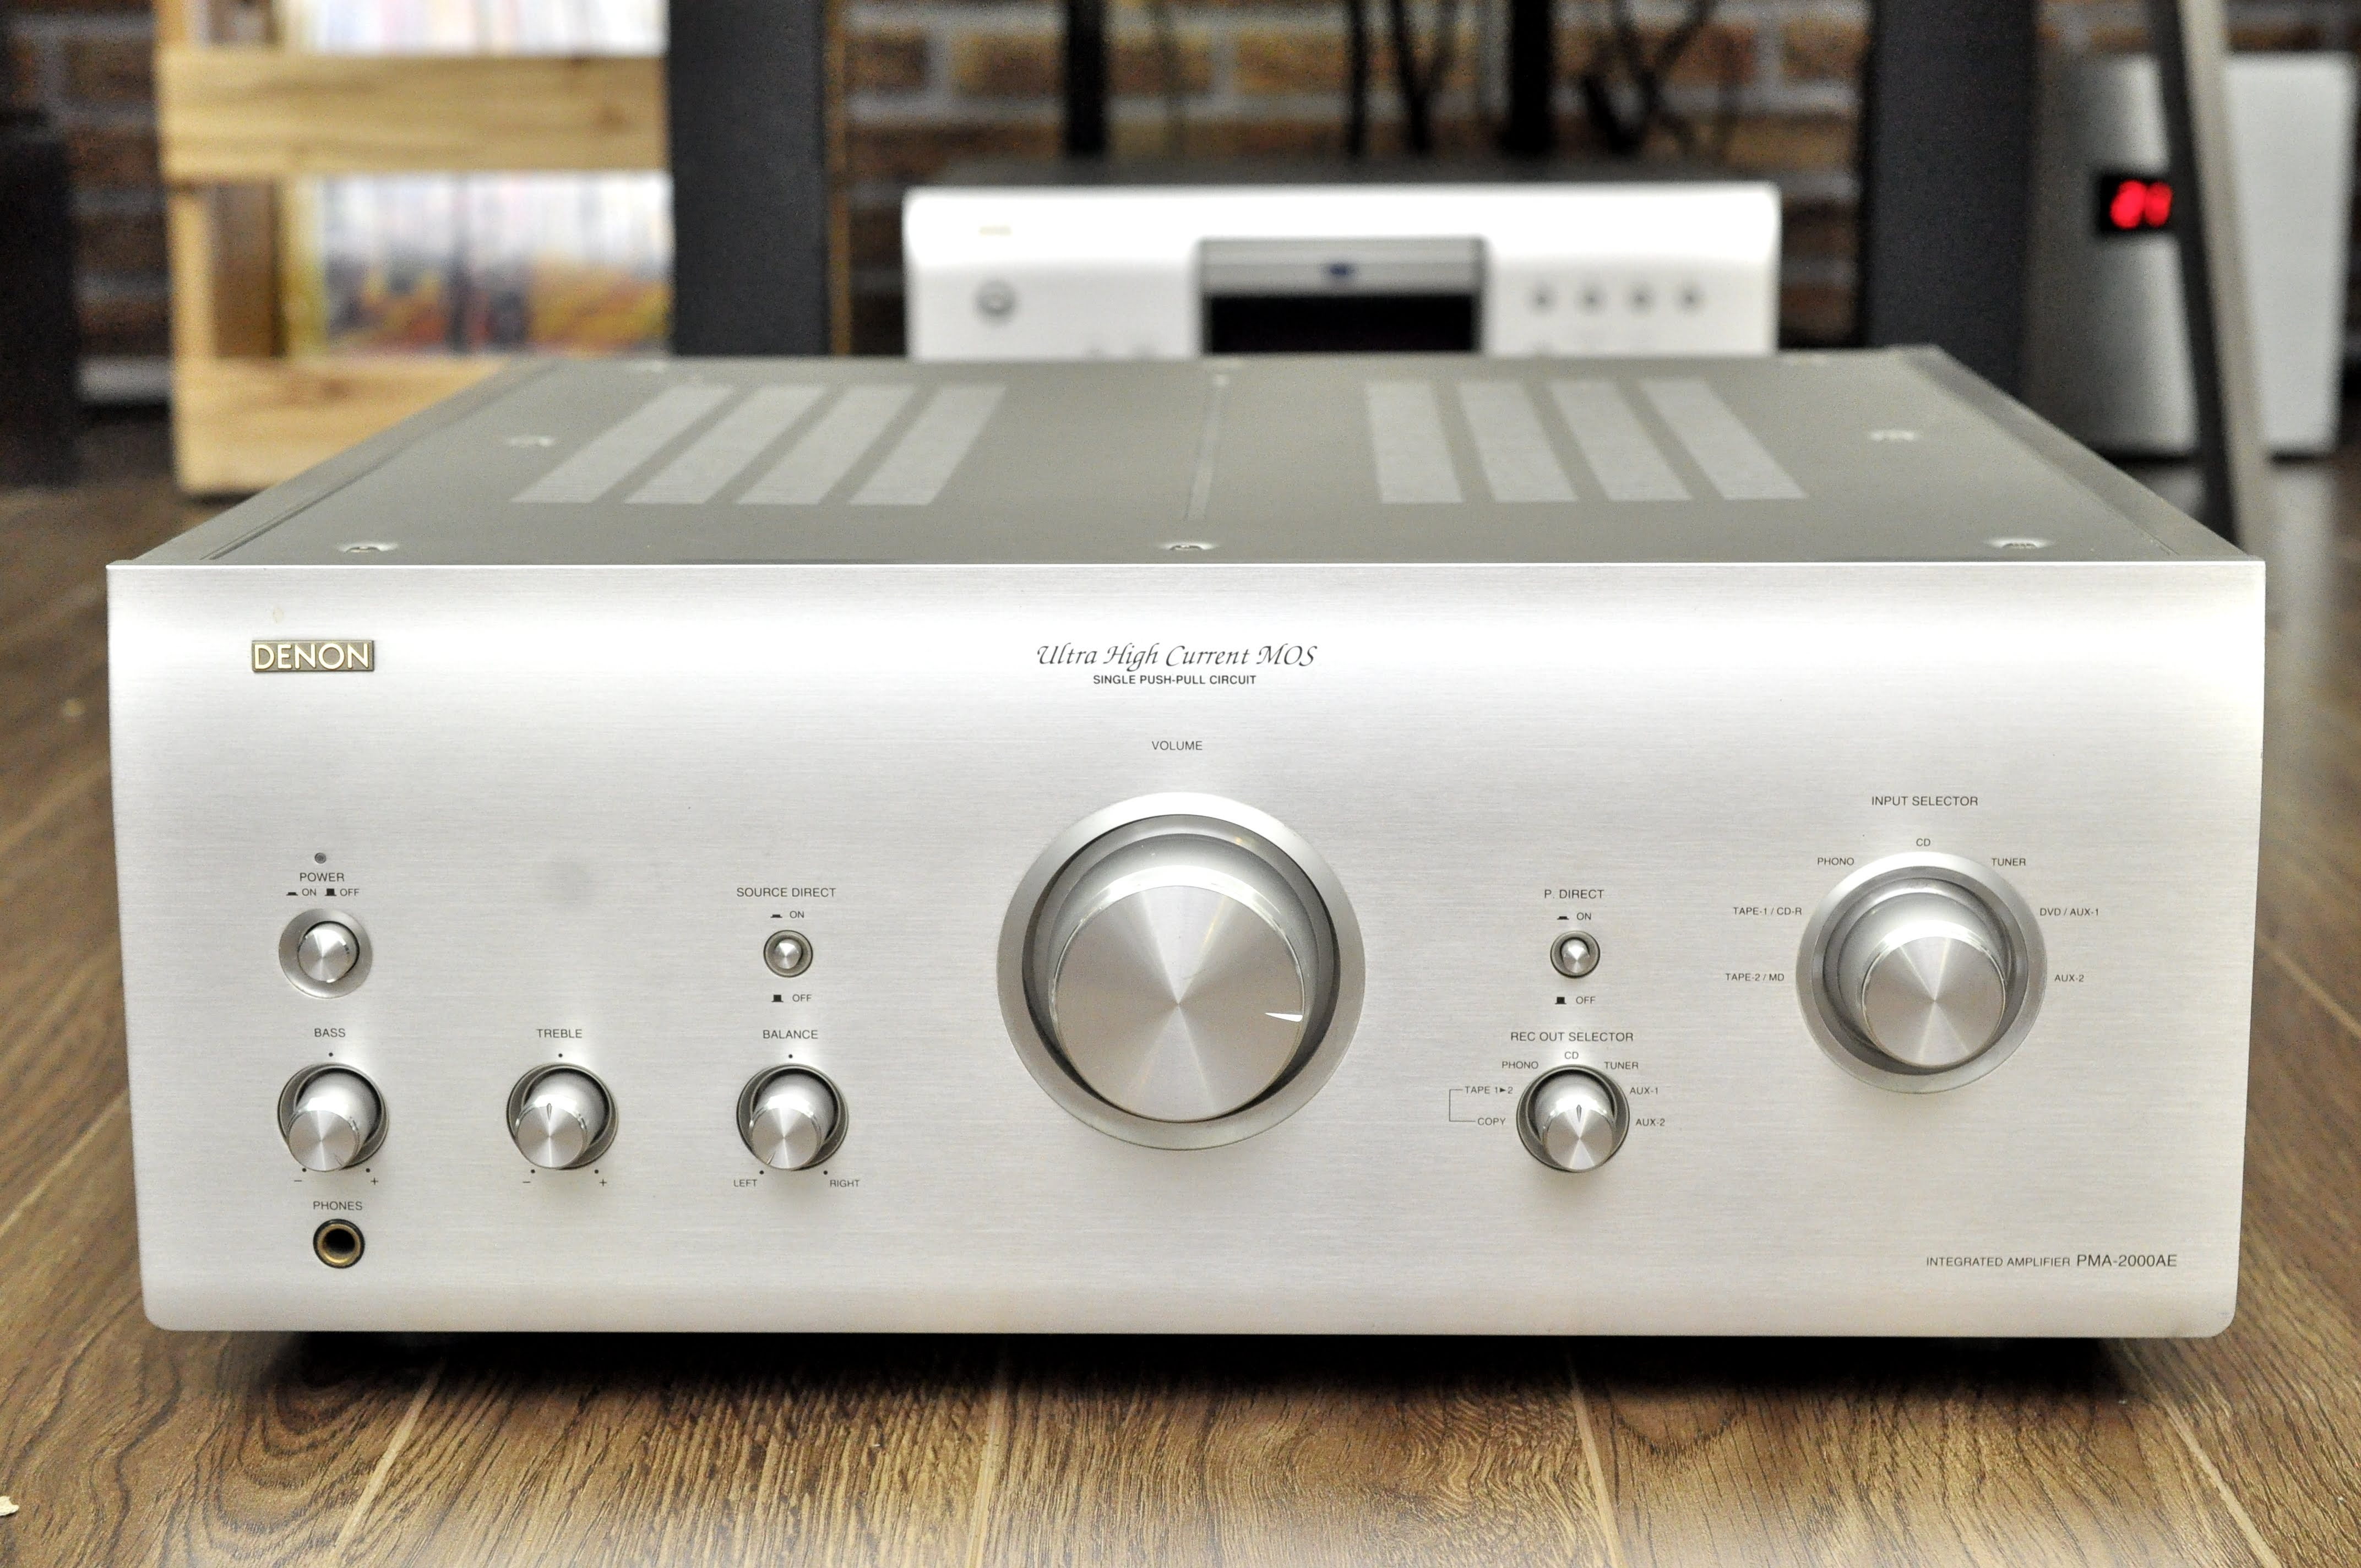 amply-denon-pma-2000ae-made-in-japan